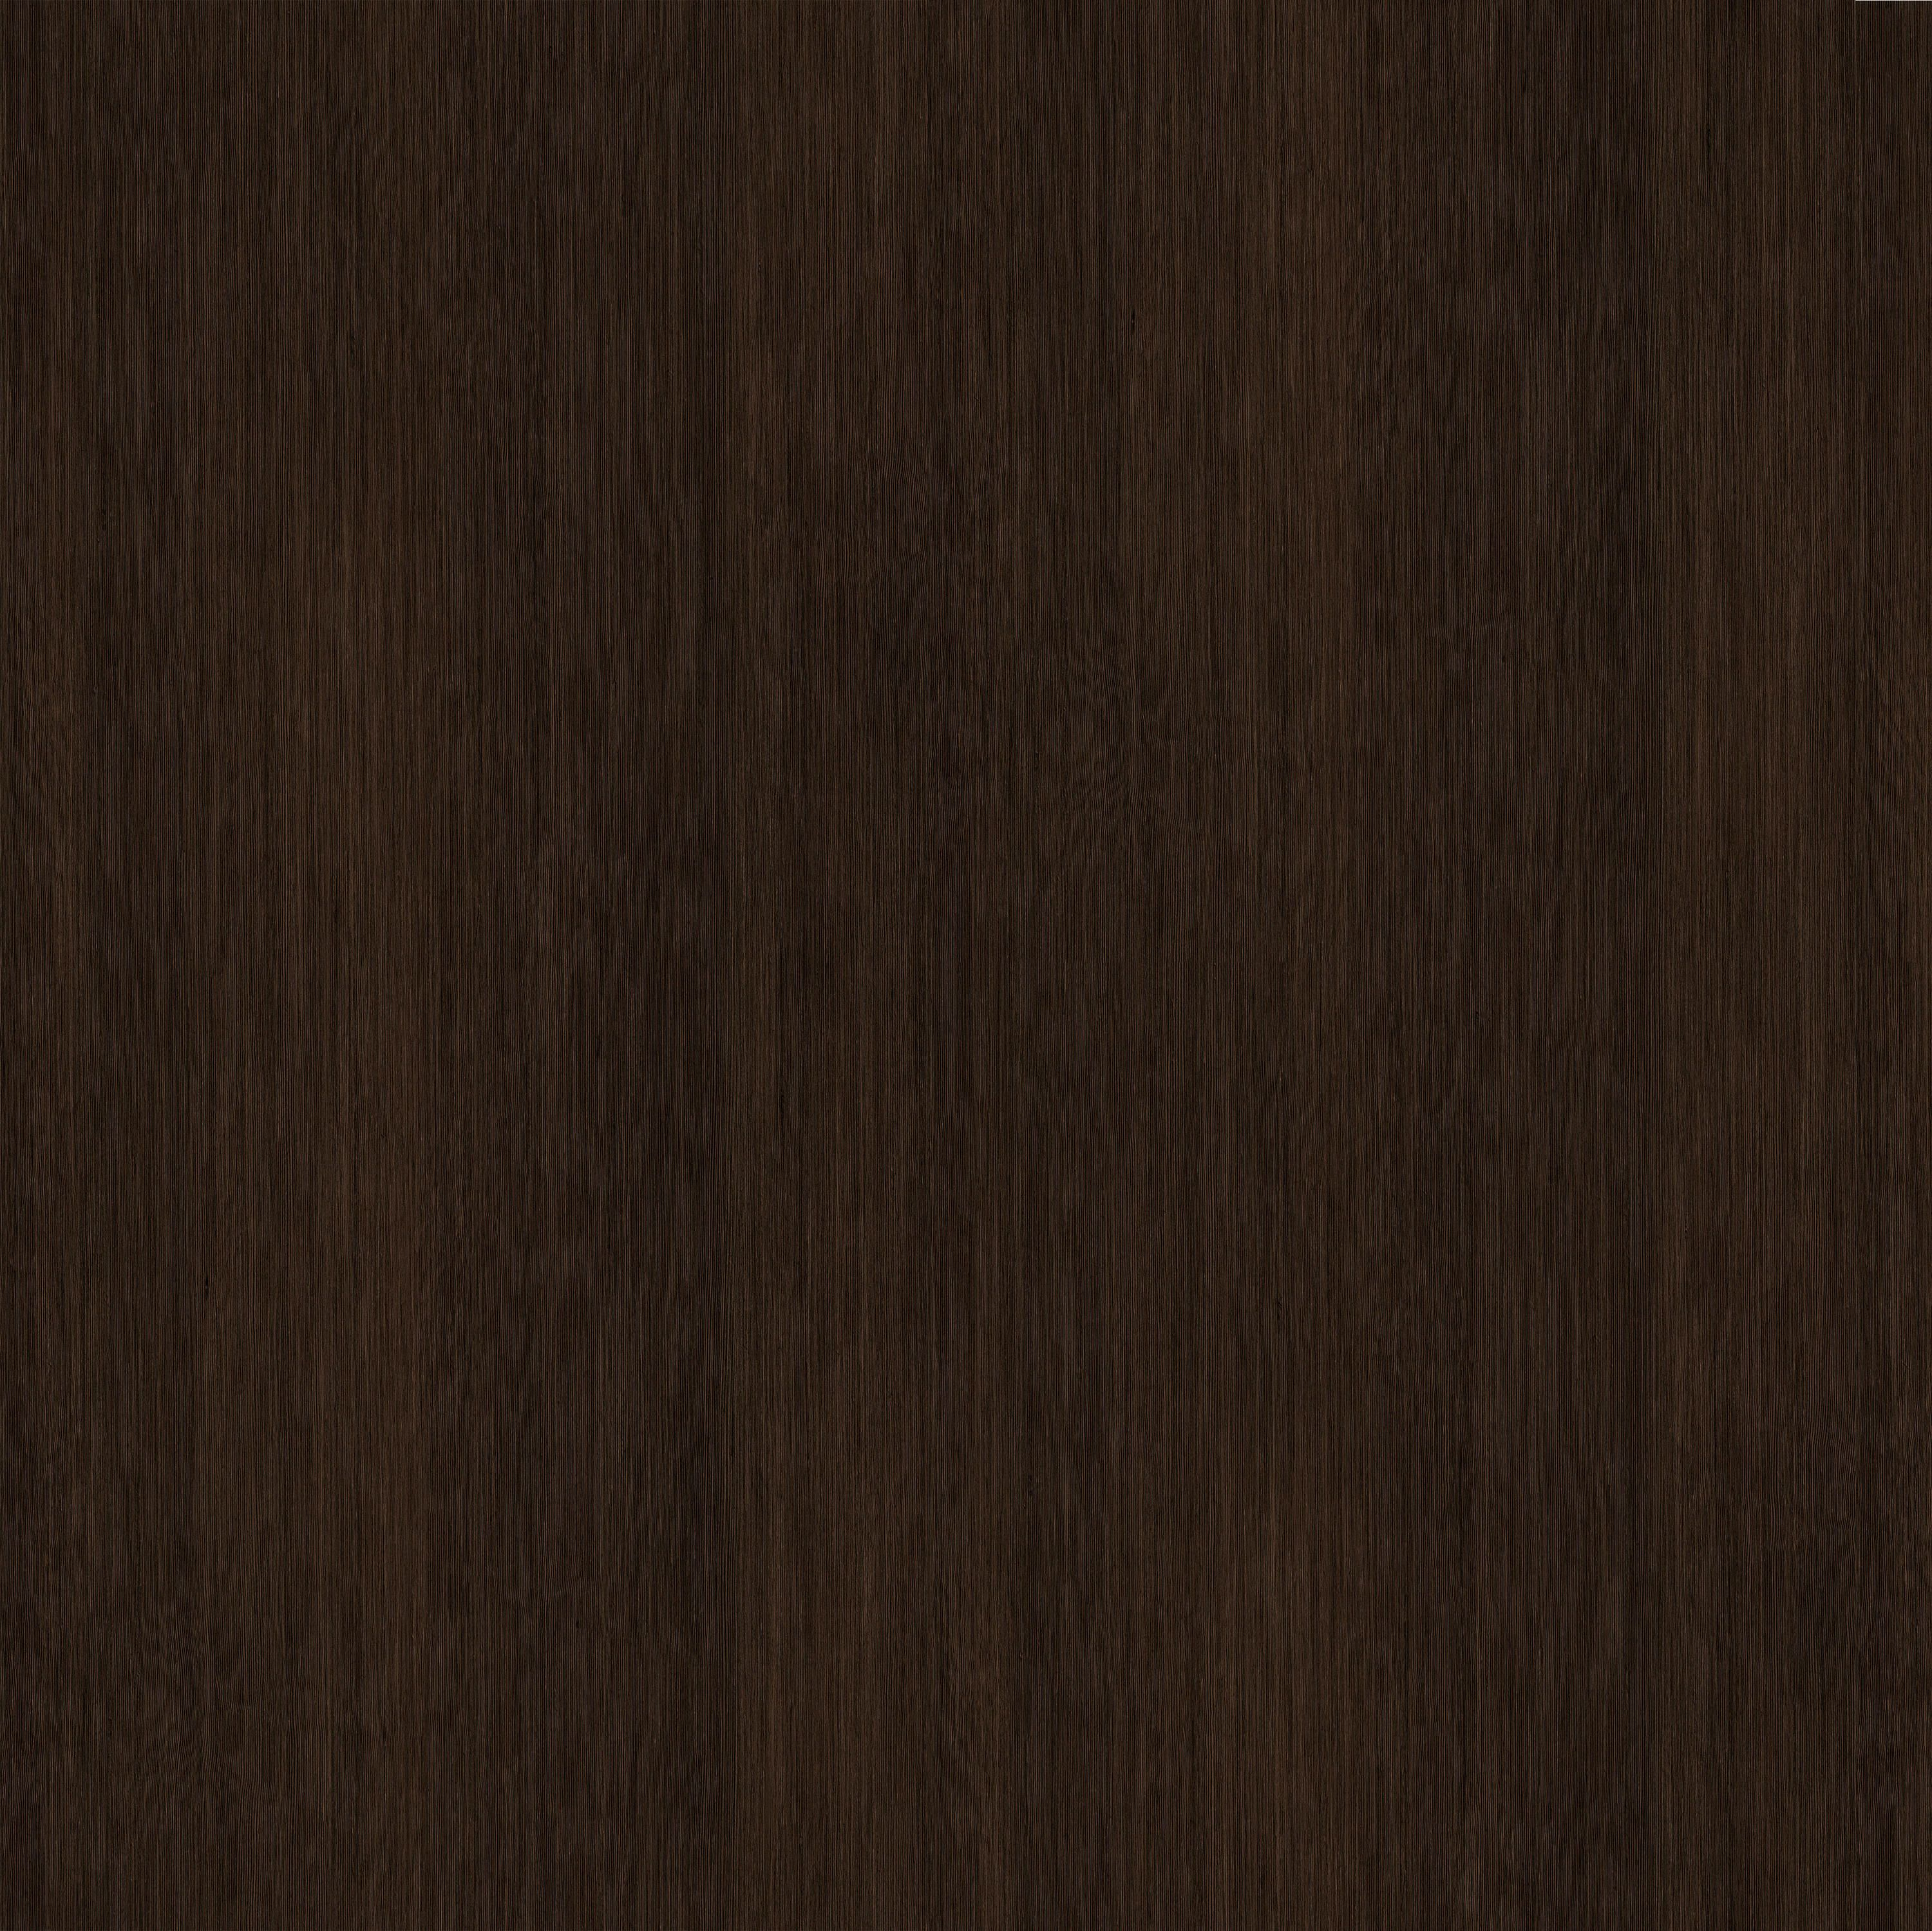 Pin By Nguyenmy On Woods In 2019 Wood Texture Seamless